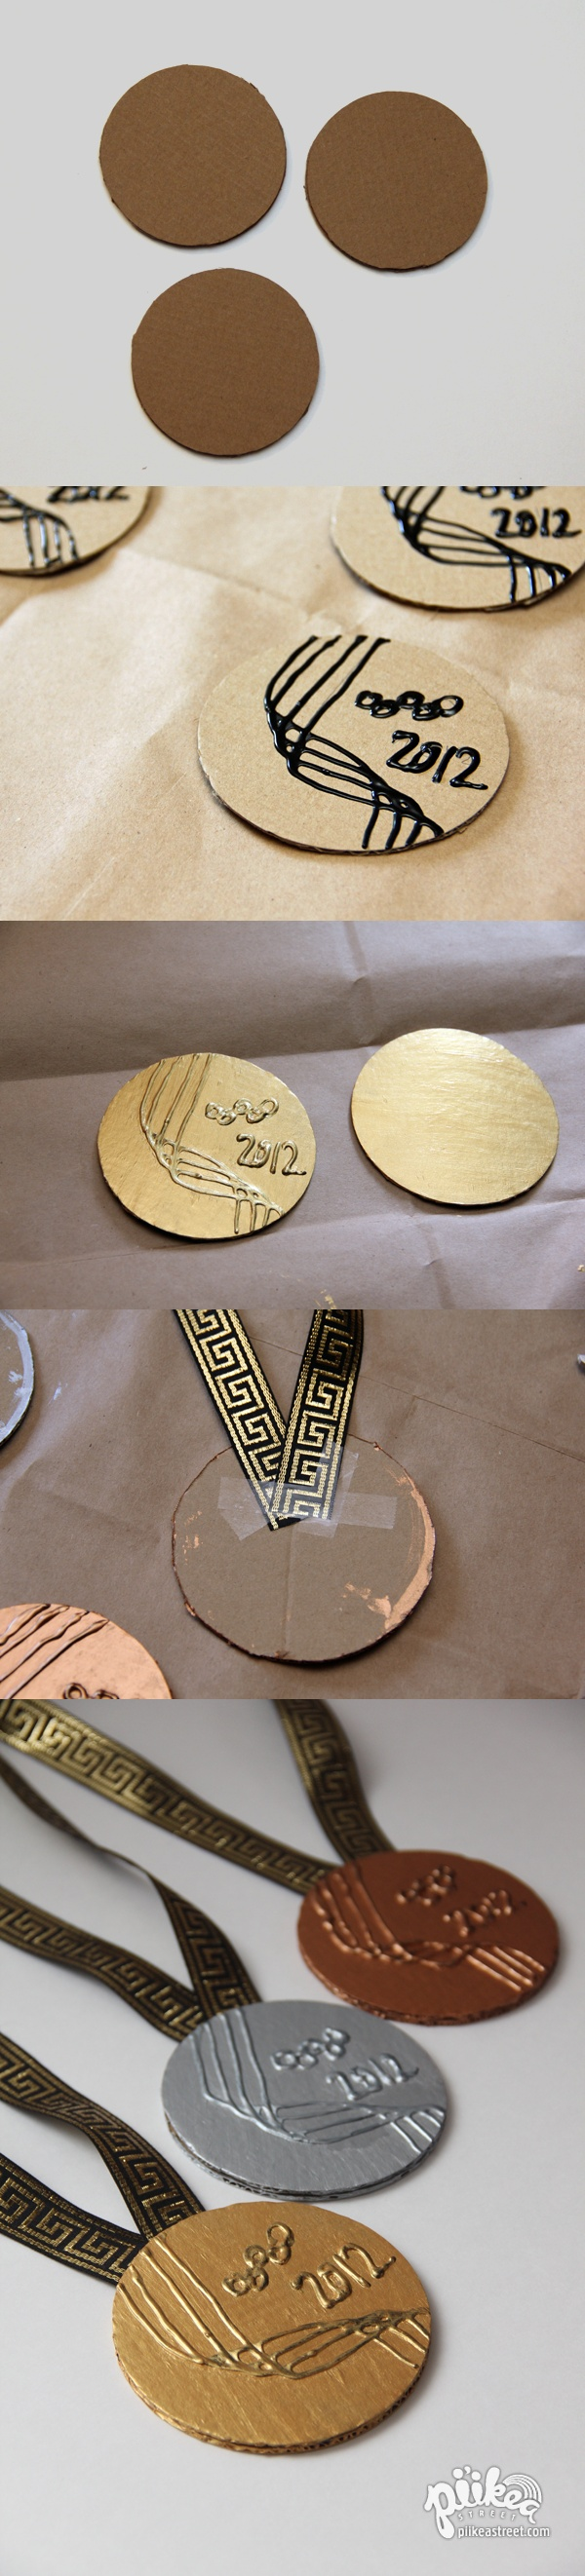 Turn cardboard into Olympic Medals. An Original #kids #craft by www.piikeastreet.com #piikeastreet                                                                                                                                                                                 Más